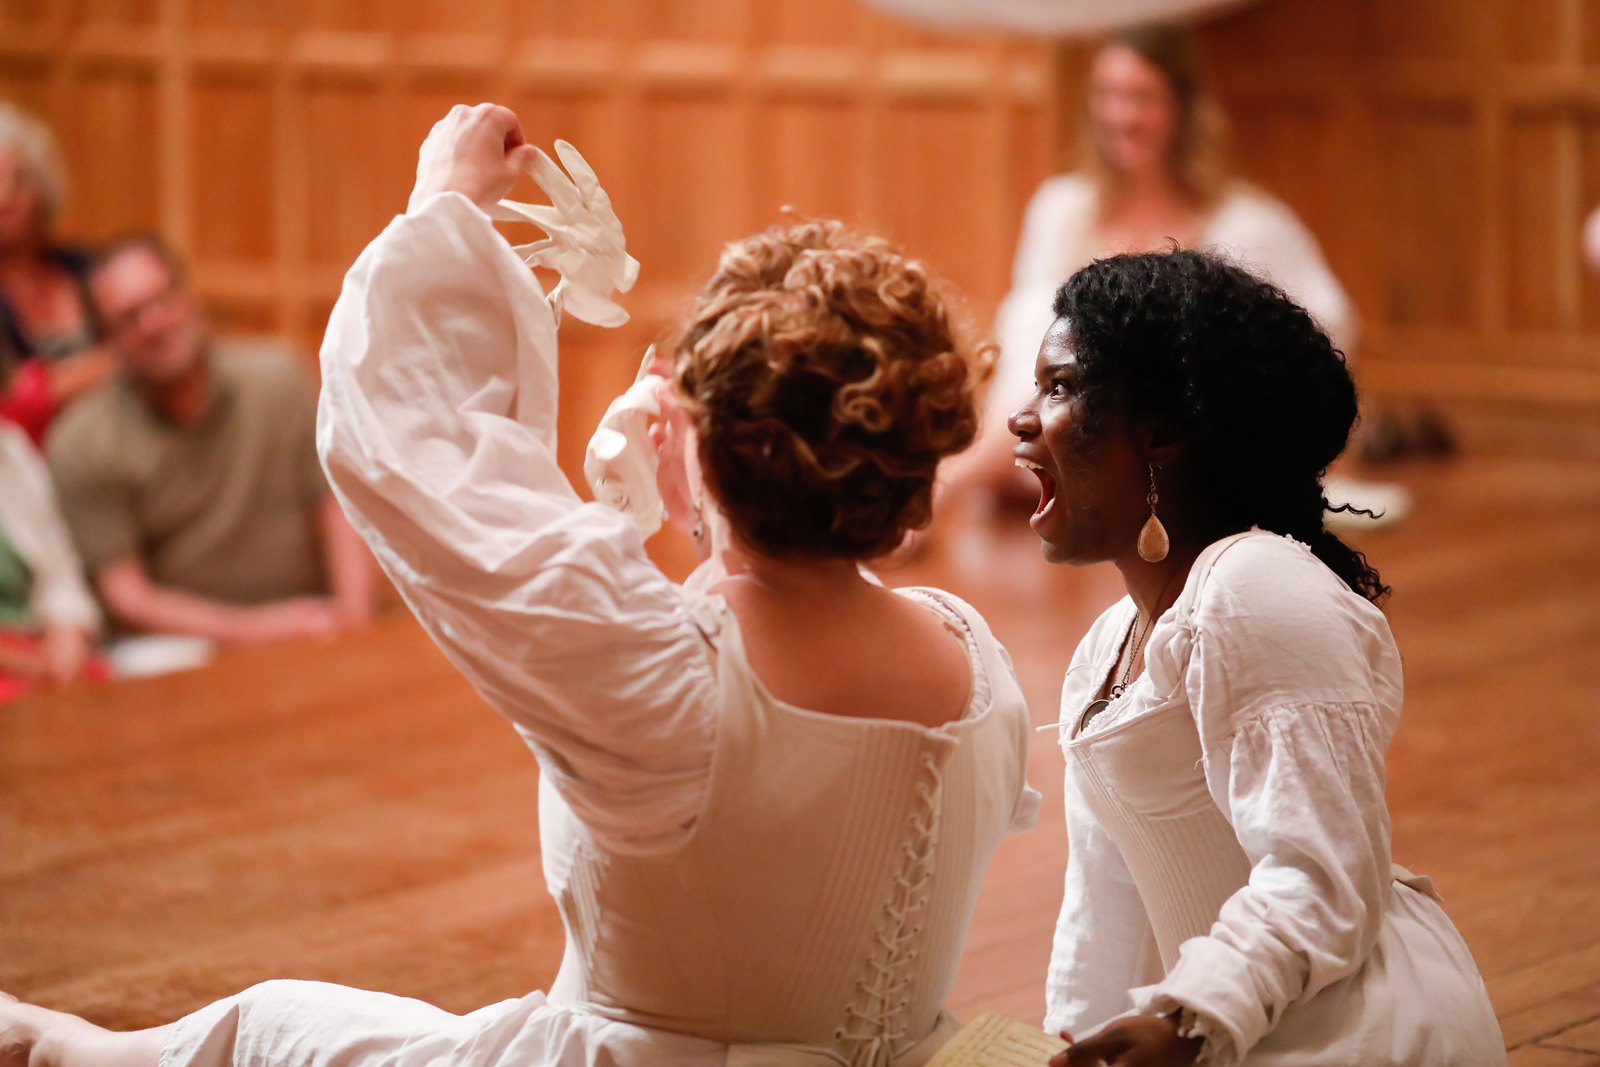 Allison Glenzer as Katherine and Shunté Lofton as Princess of France in LOVE'S LABOUR'S LOST. Photo by Lindsey Walters.